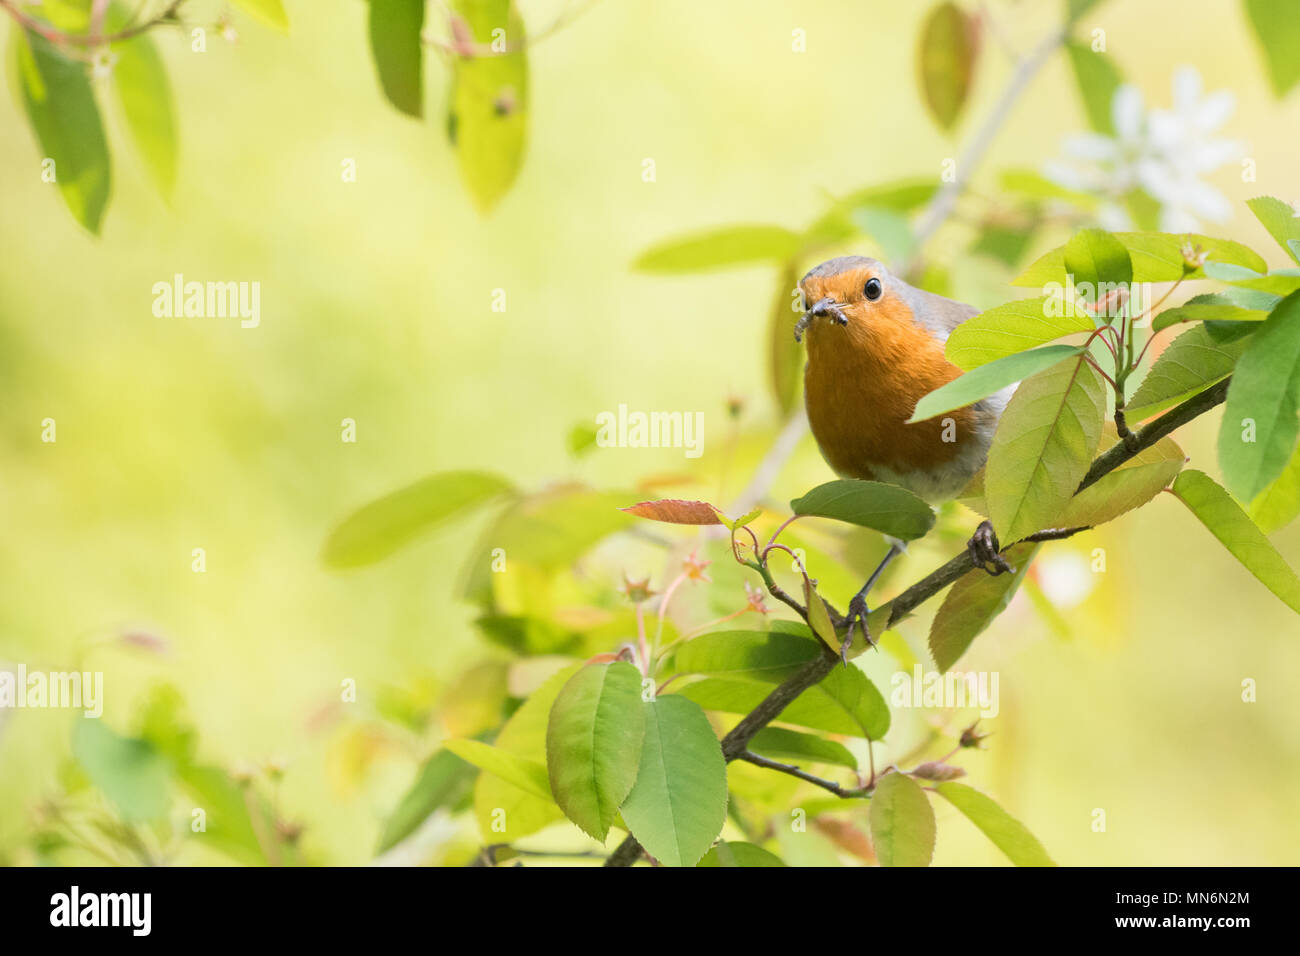 European robin Erithacus Rubecula with a grub in its beak perched in amelanchier tree in spring with copyspace - Stock Image